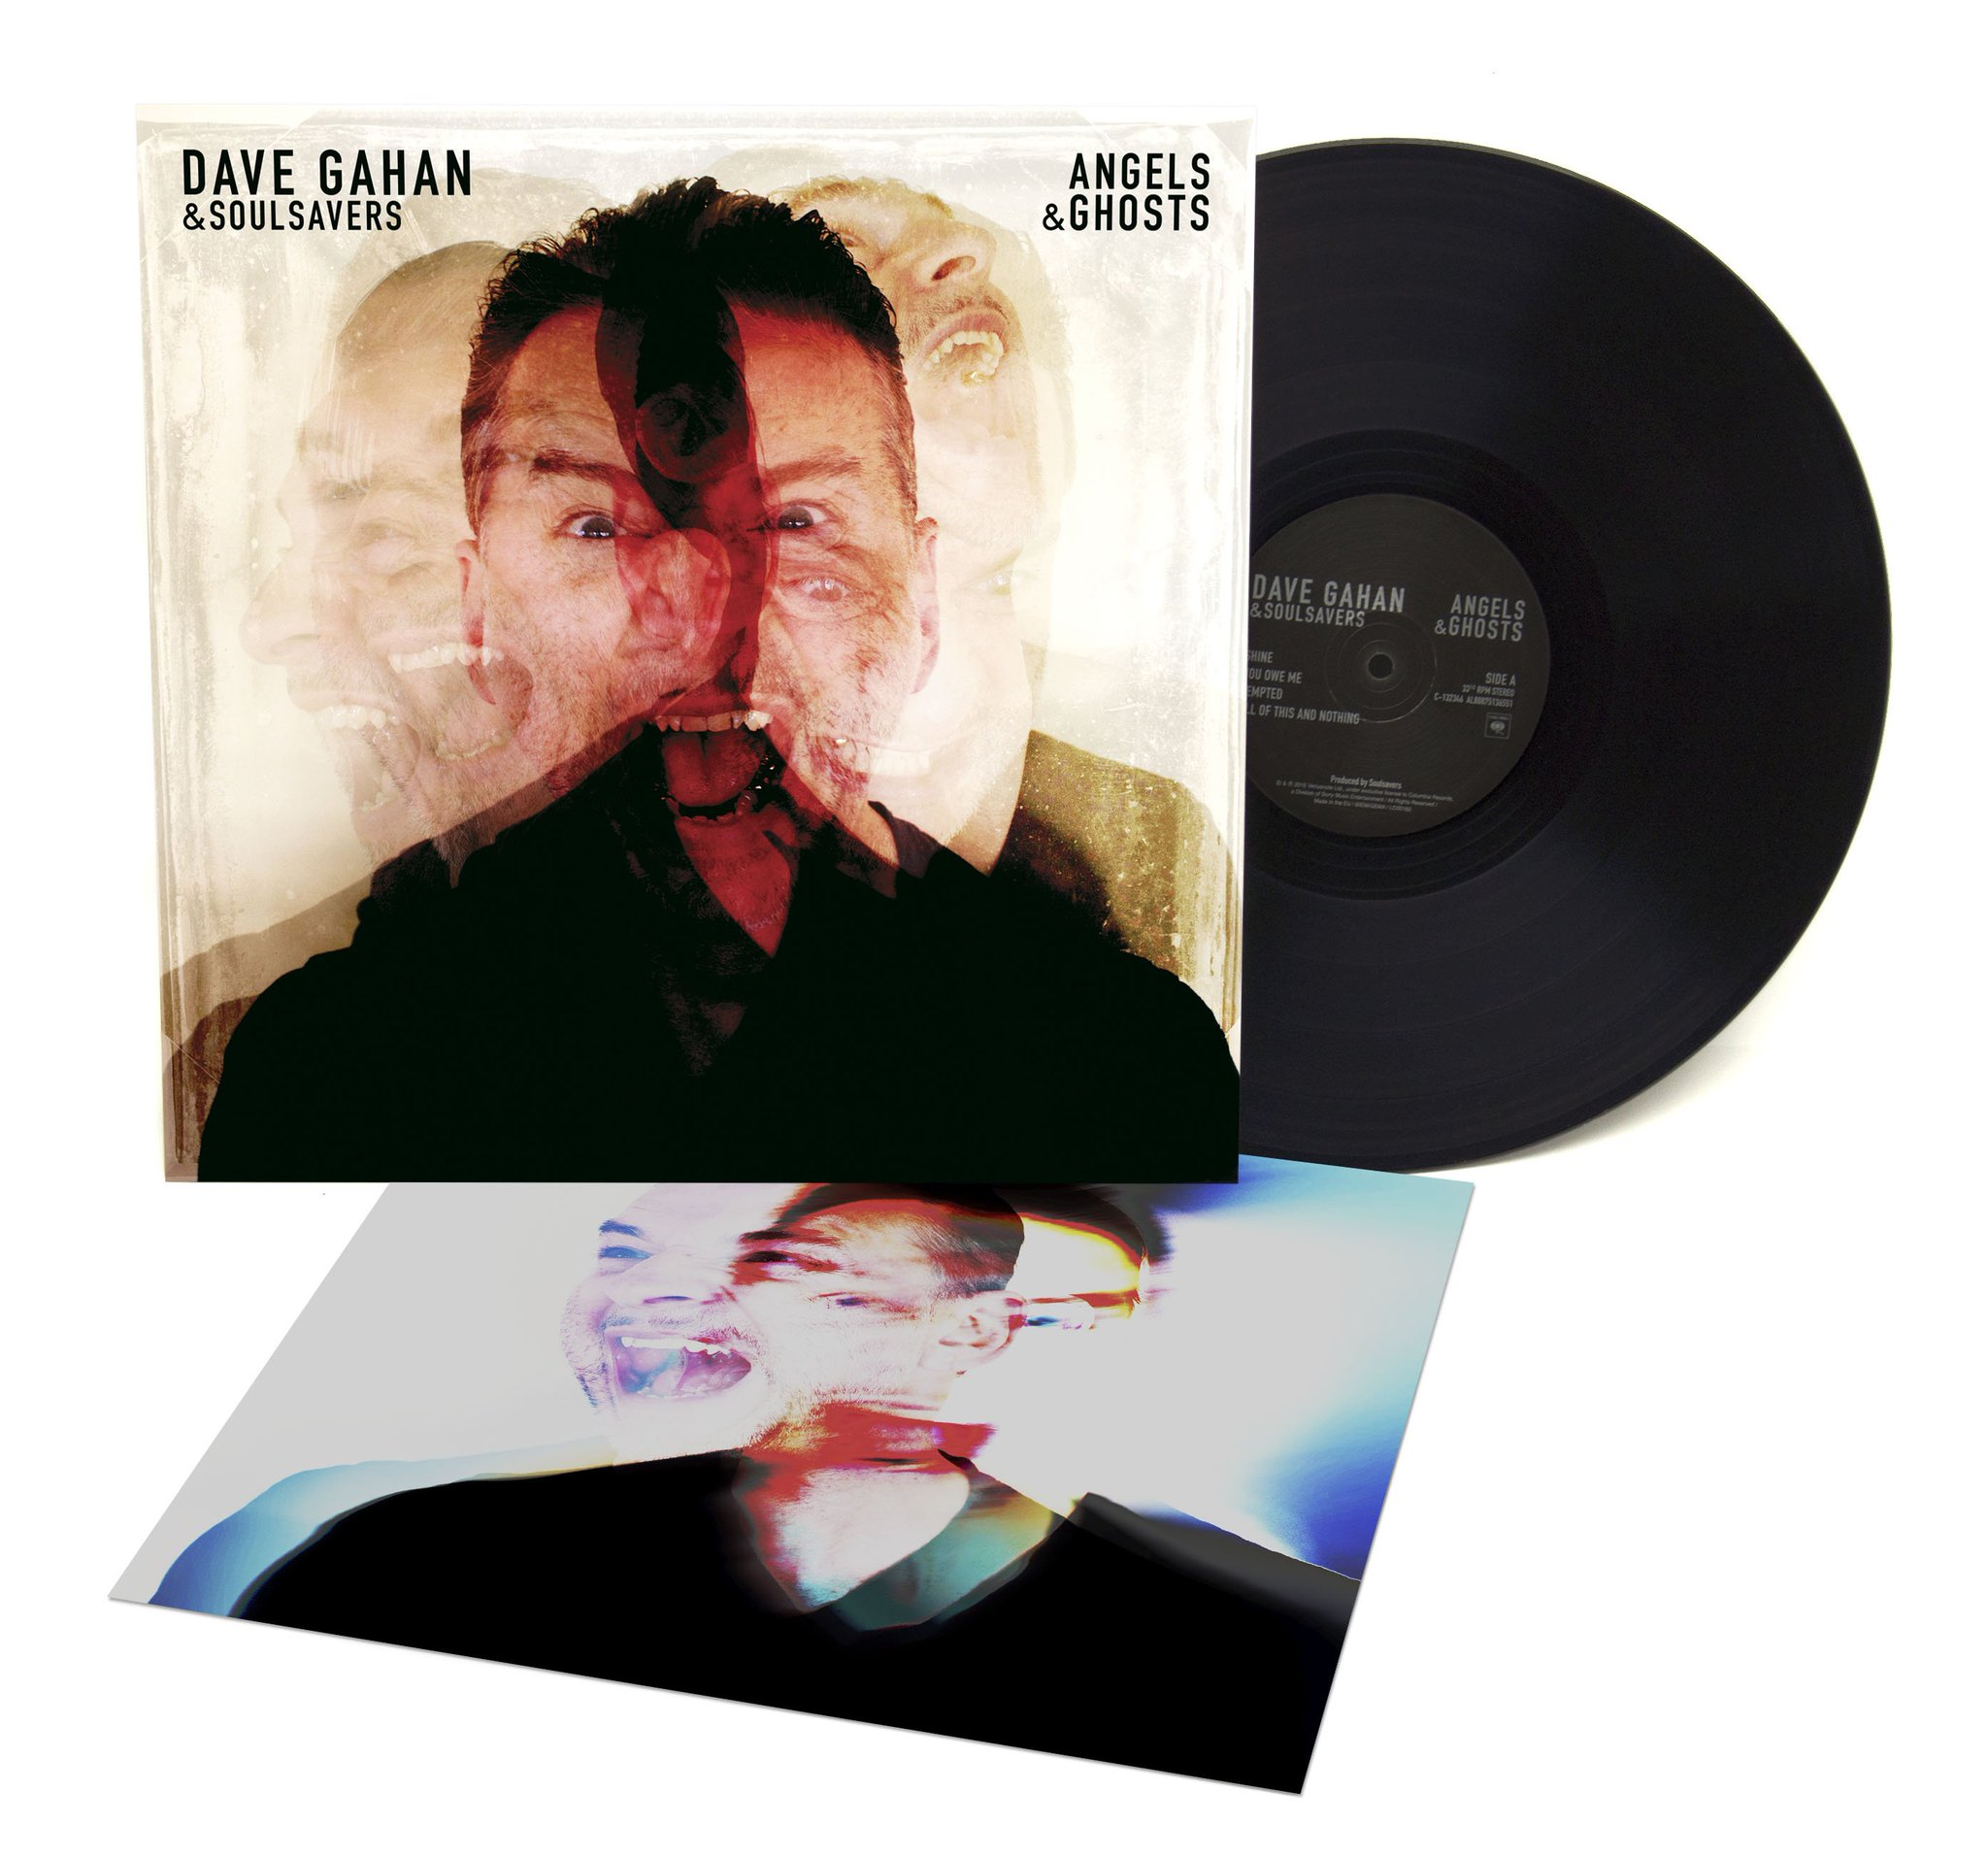 Dave Gahan & Soulsavers' album 'Angels & Ghosts' is now available on vinyl at @AmazonMusic https://t.co/2orvDztFTq https://t.co/jWNx4K7xuF